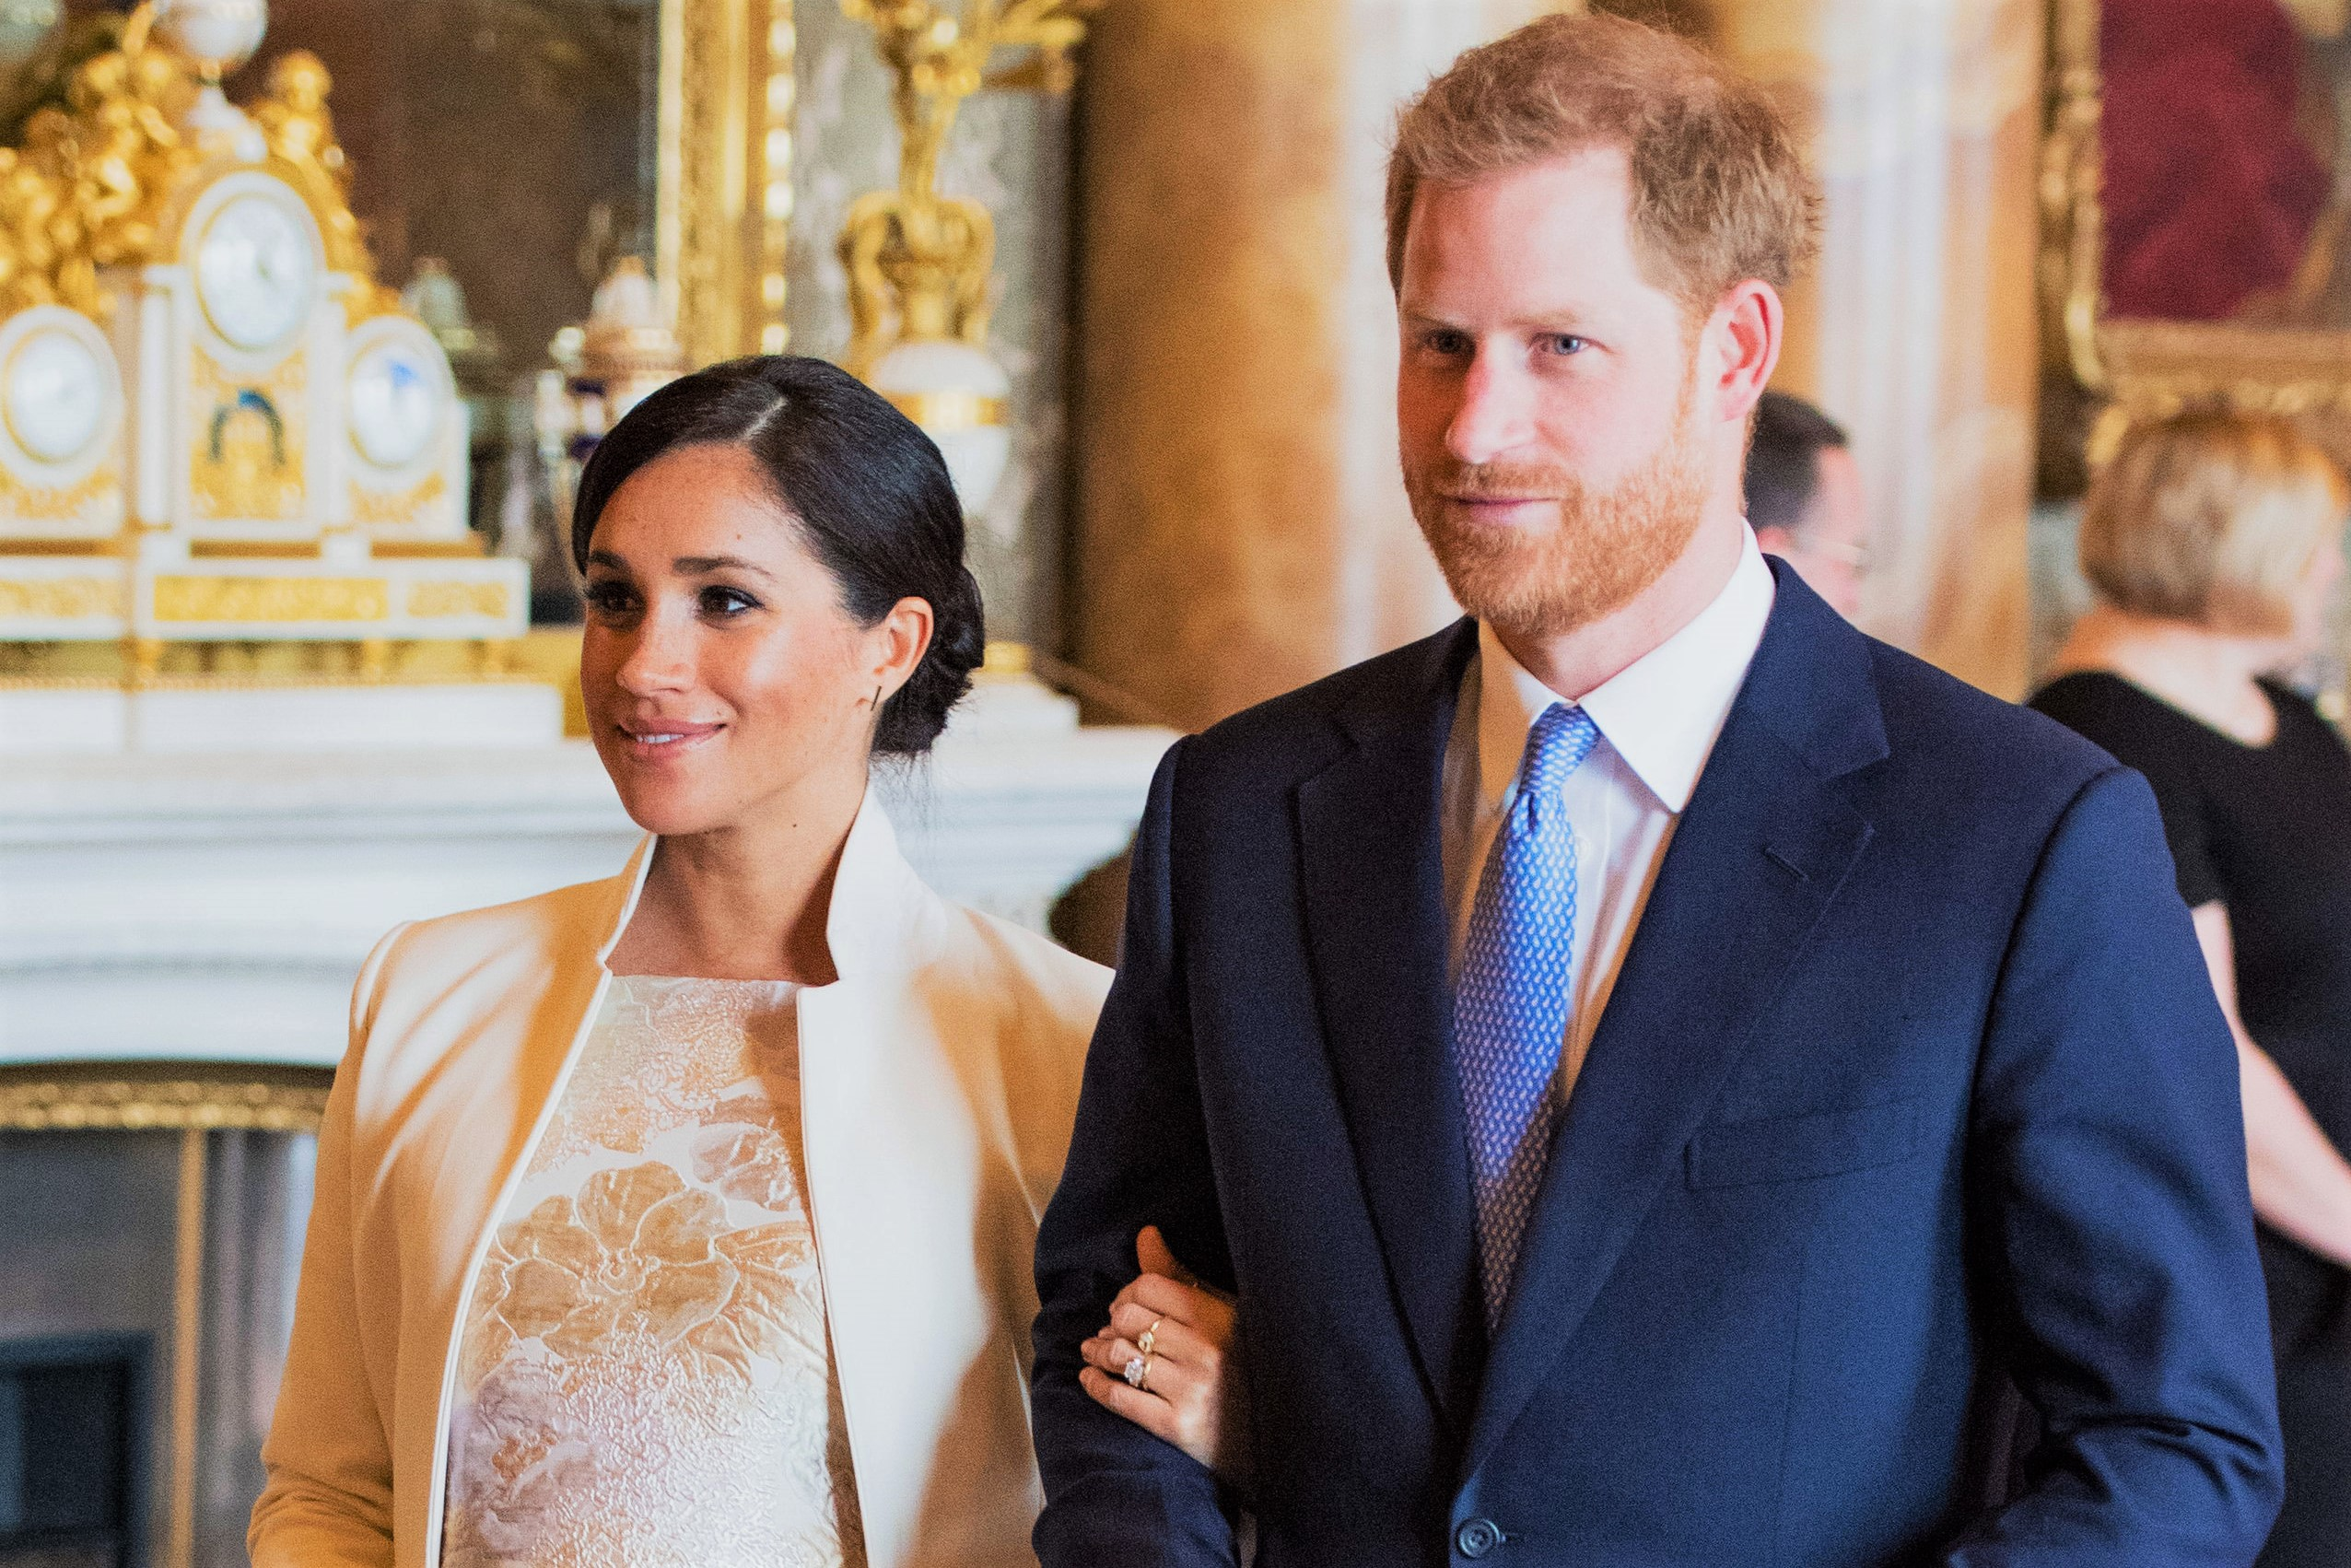 Pregnant Meghan Markle Holding Husband Prince Harry